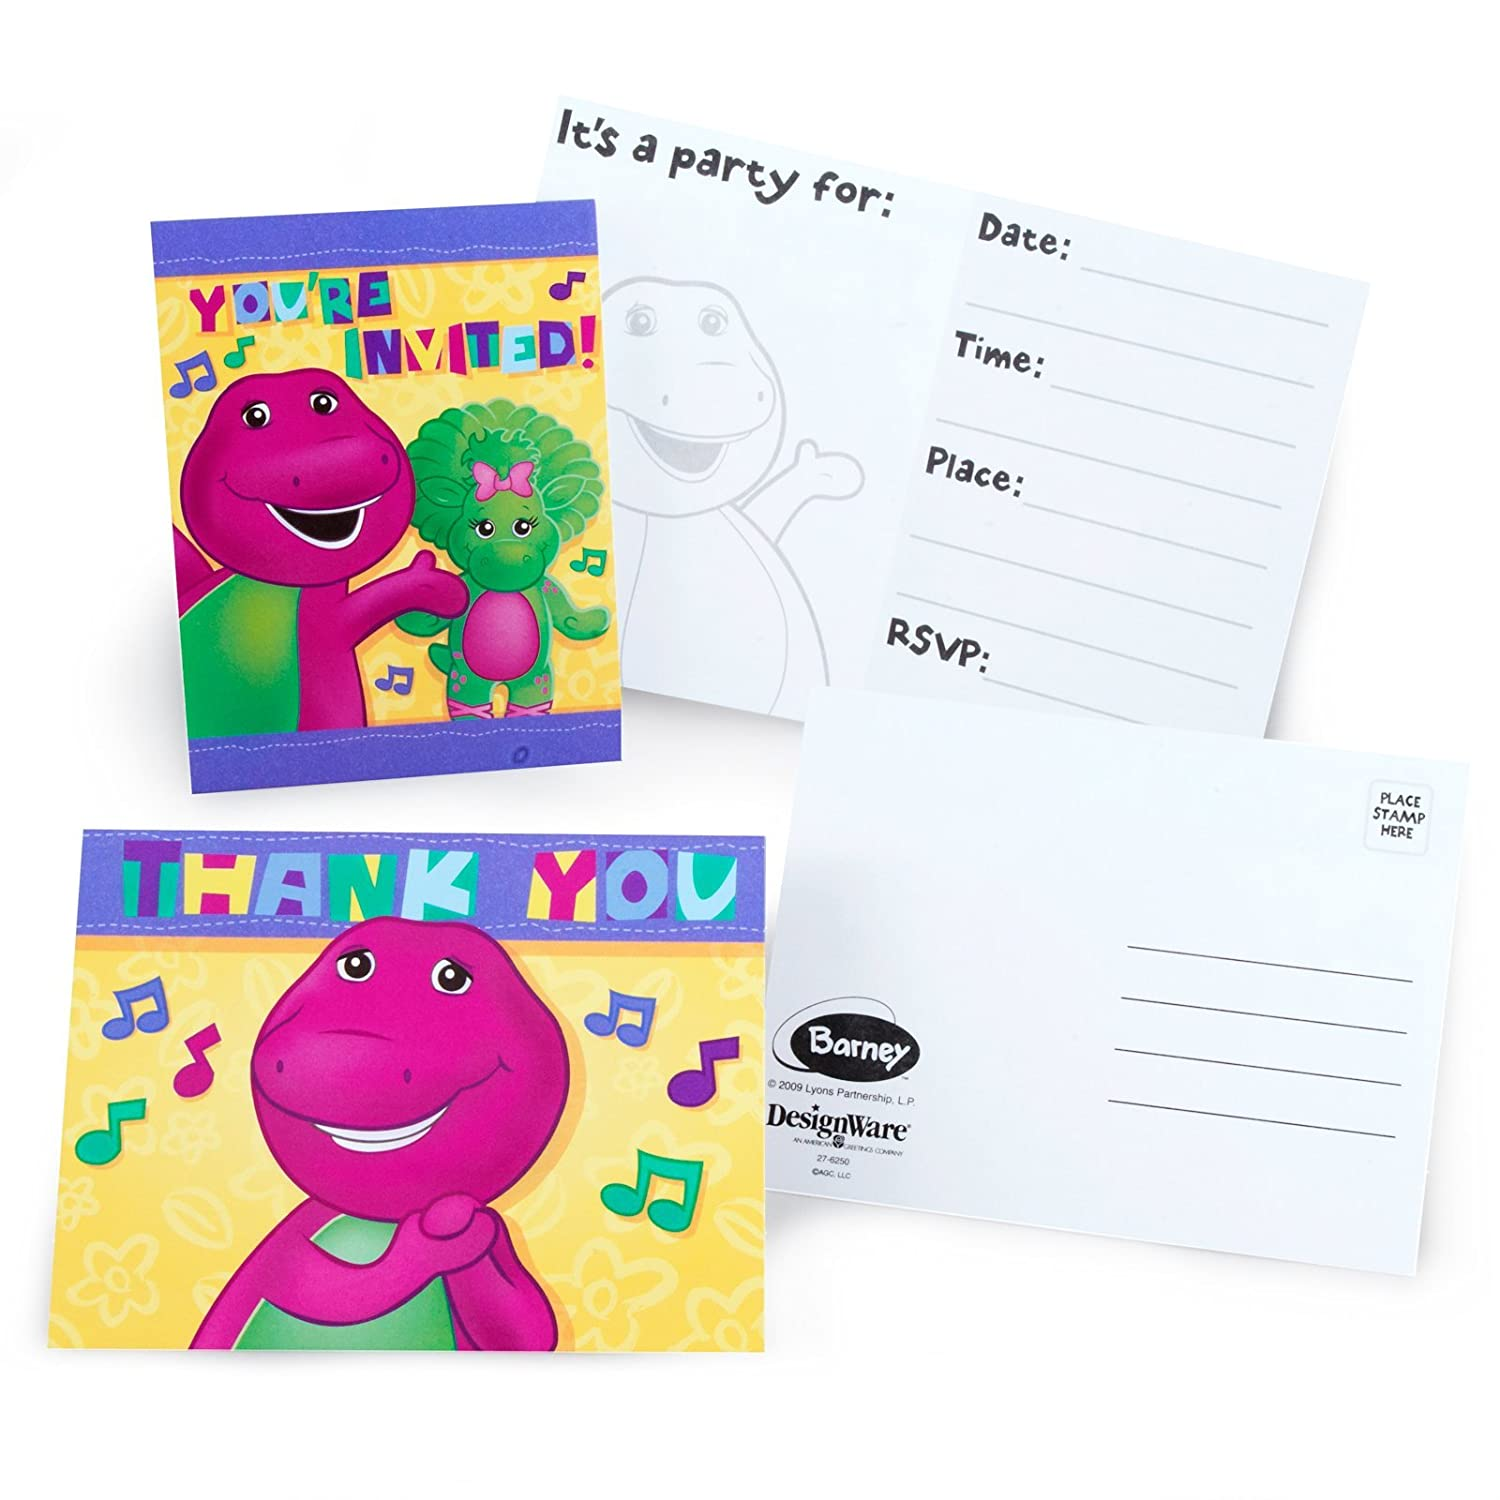 Amazon barney party supplies invitations and thank you notes amazon barney party supplies invitations and thank you notes 8 each toys games monicamarmolfo Images